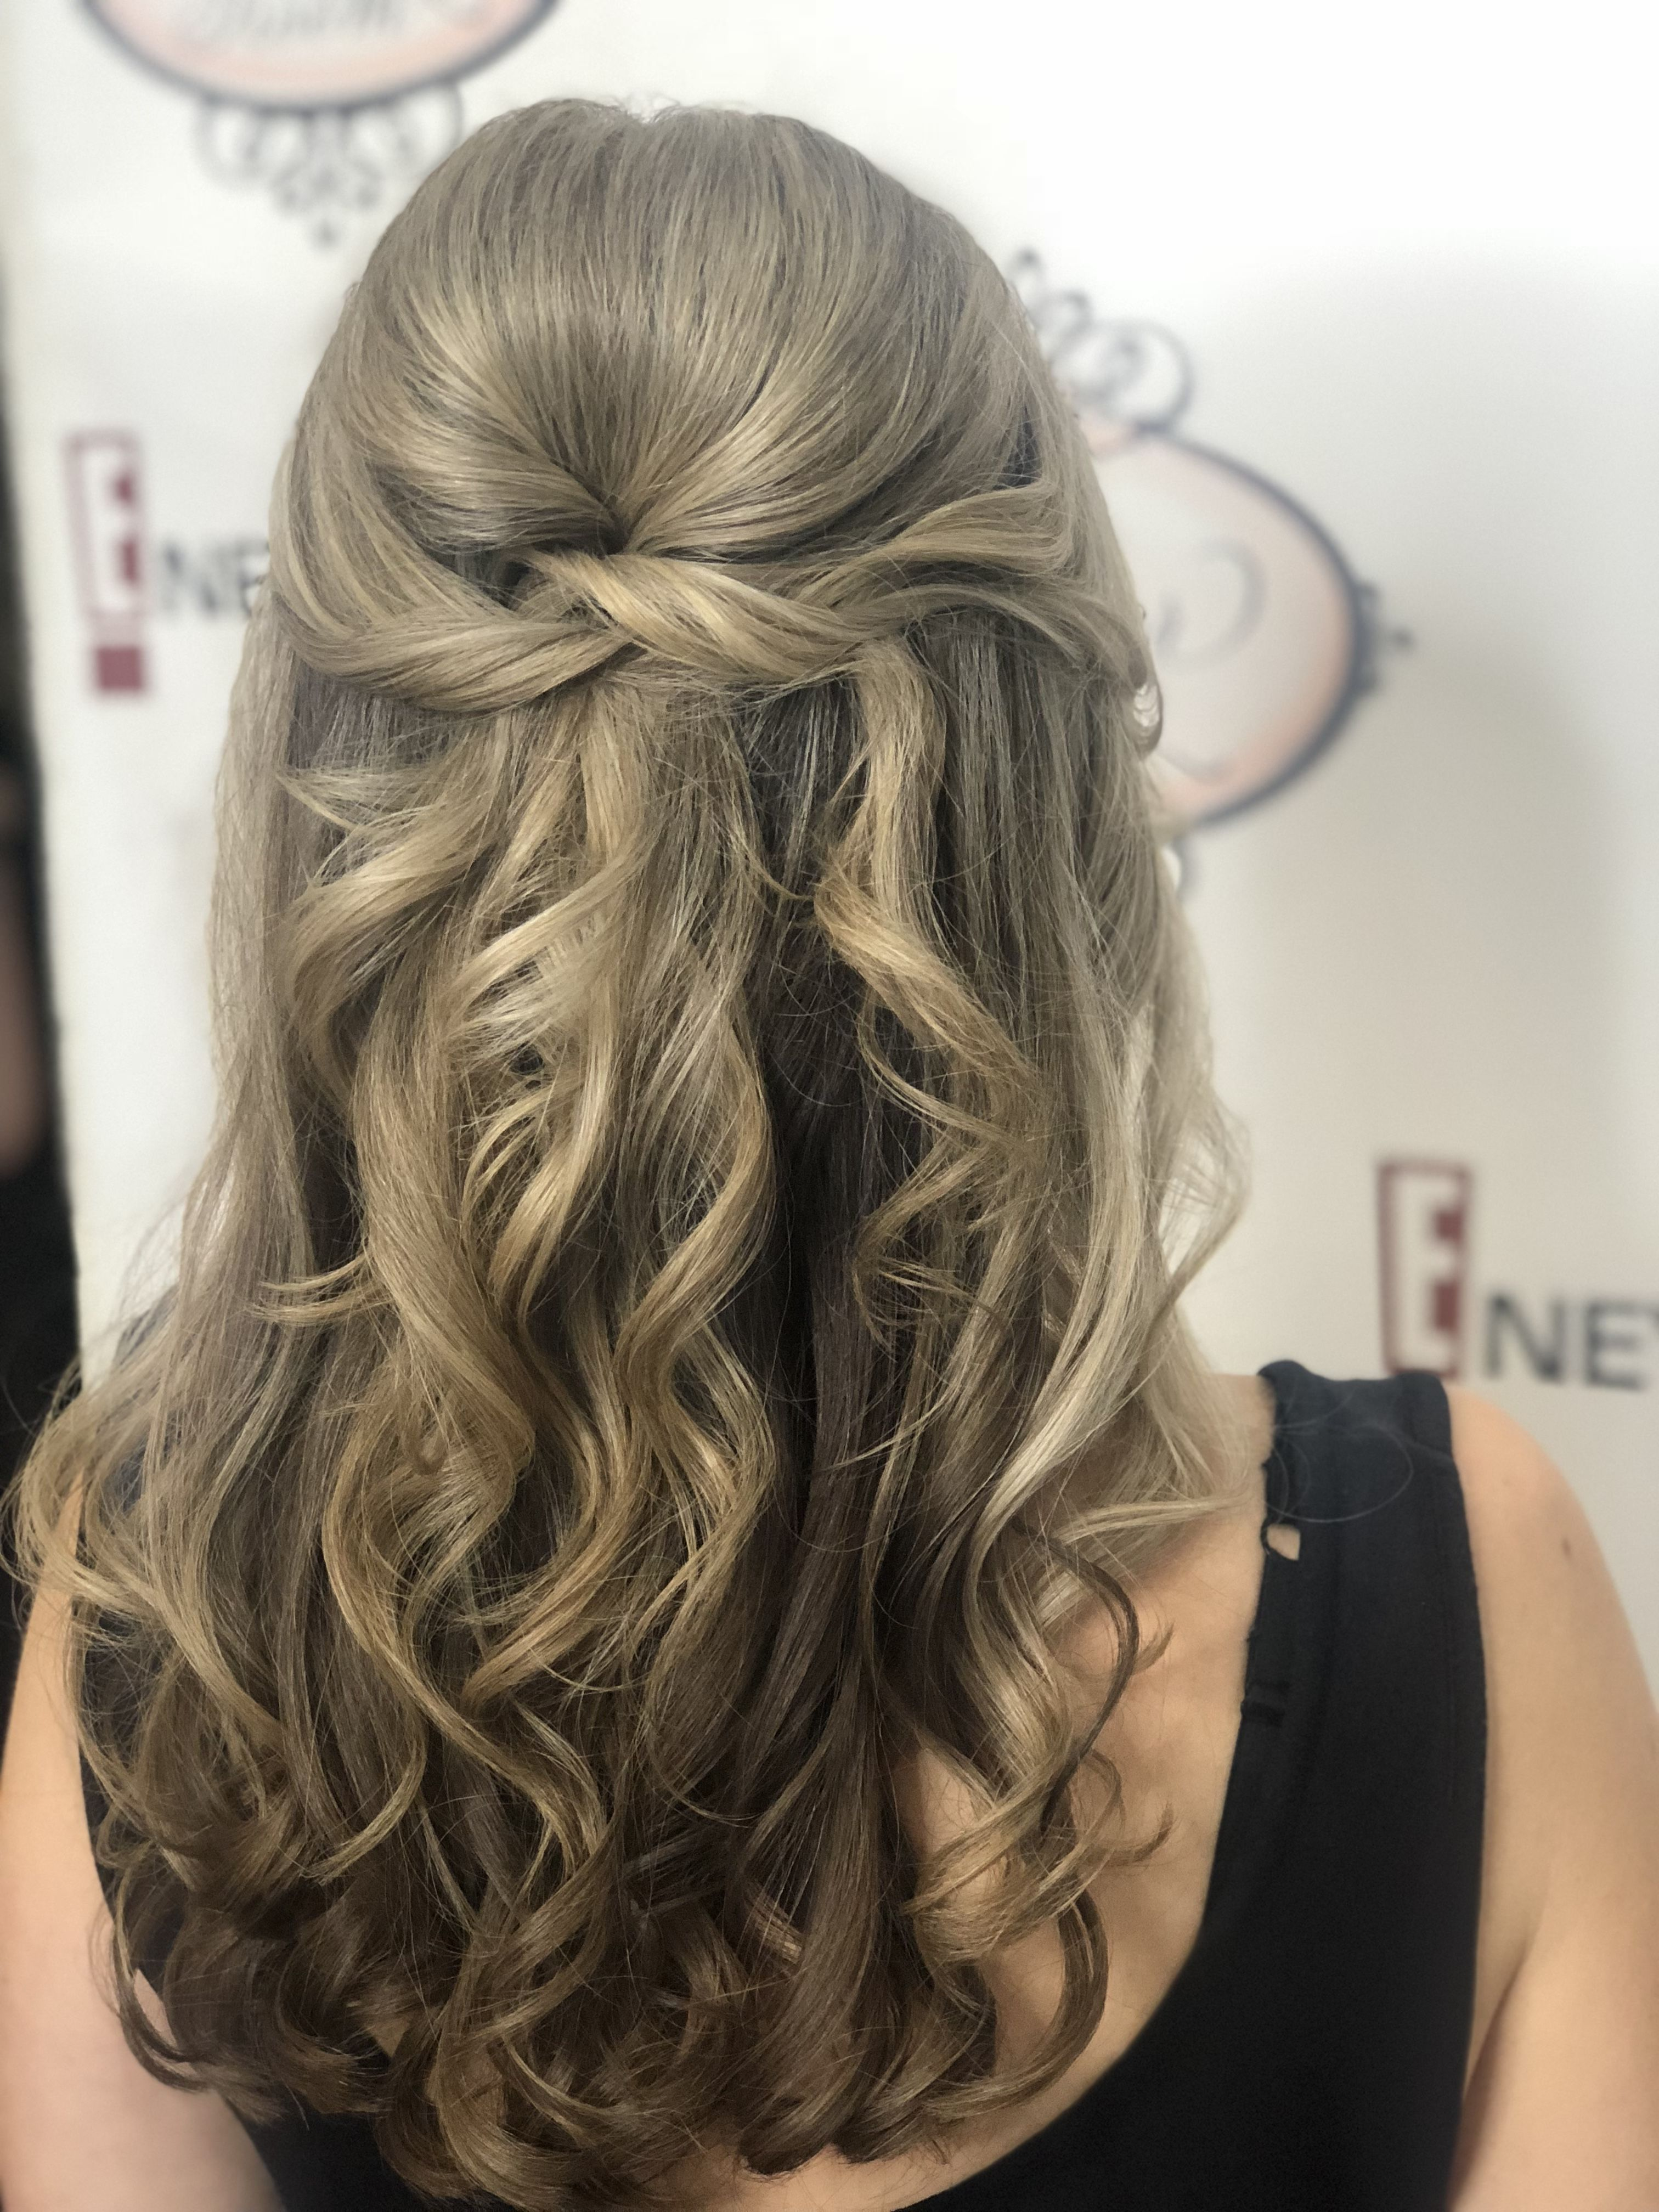 Half Up Hairstyle For Special Event By Bridgette Powder Room Special Occasion Hairstyles Prom Hairstyles For Long Hair Event Hairstyles